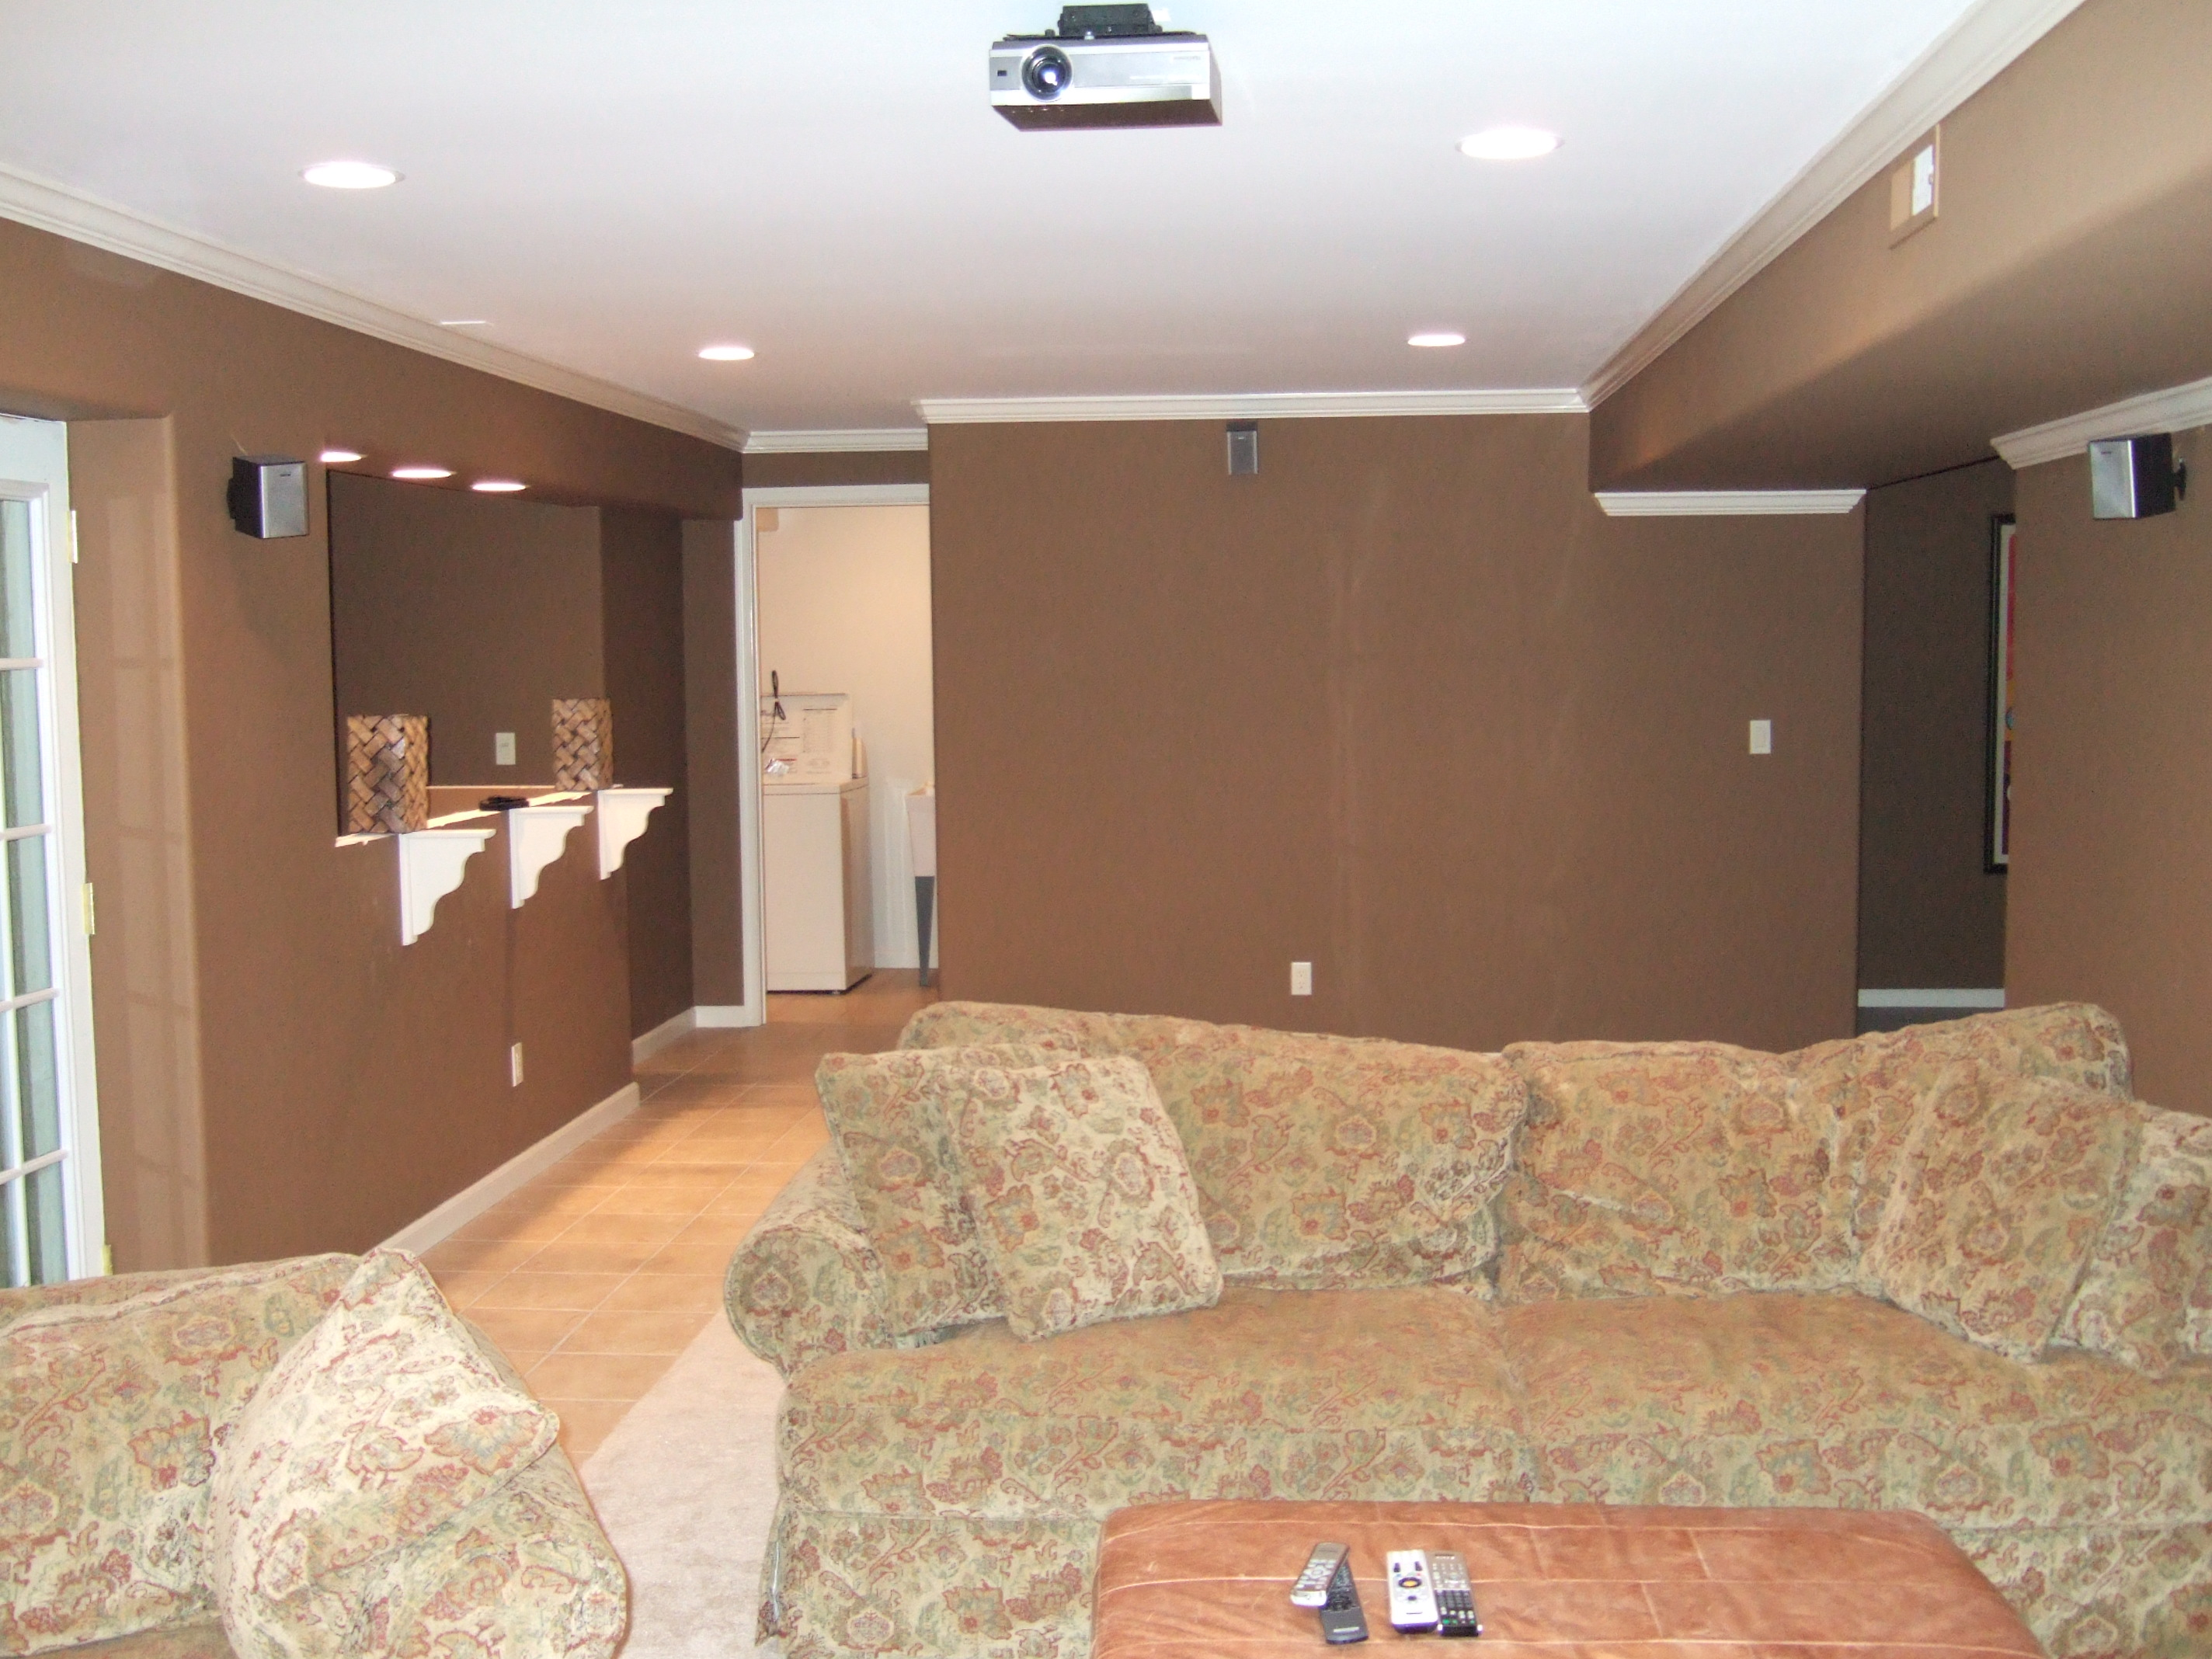 Finished basement remodeling fairfax manassas pictures for Finished bathroom ideas